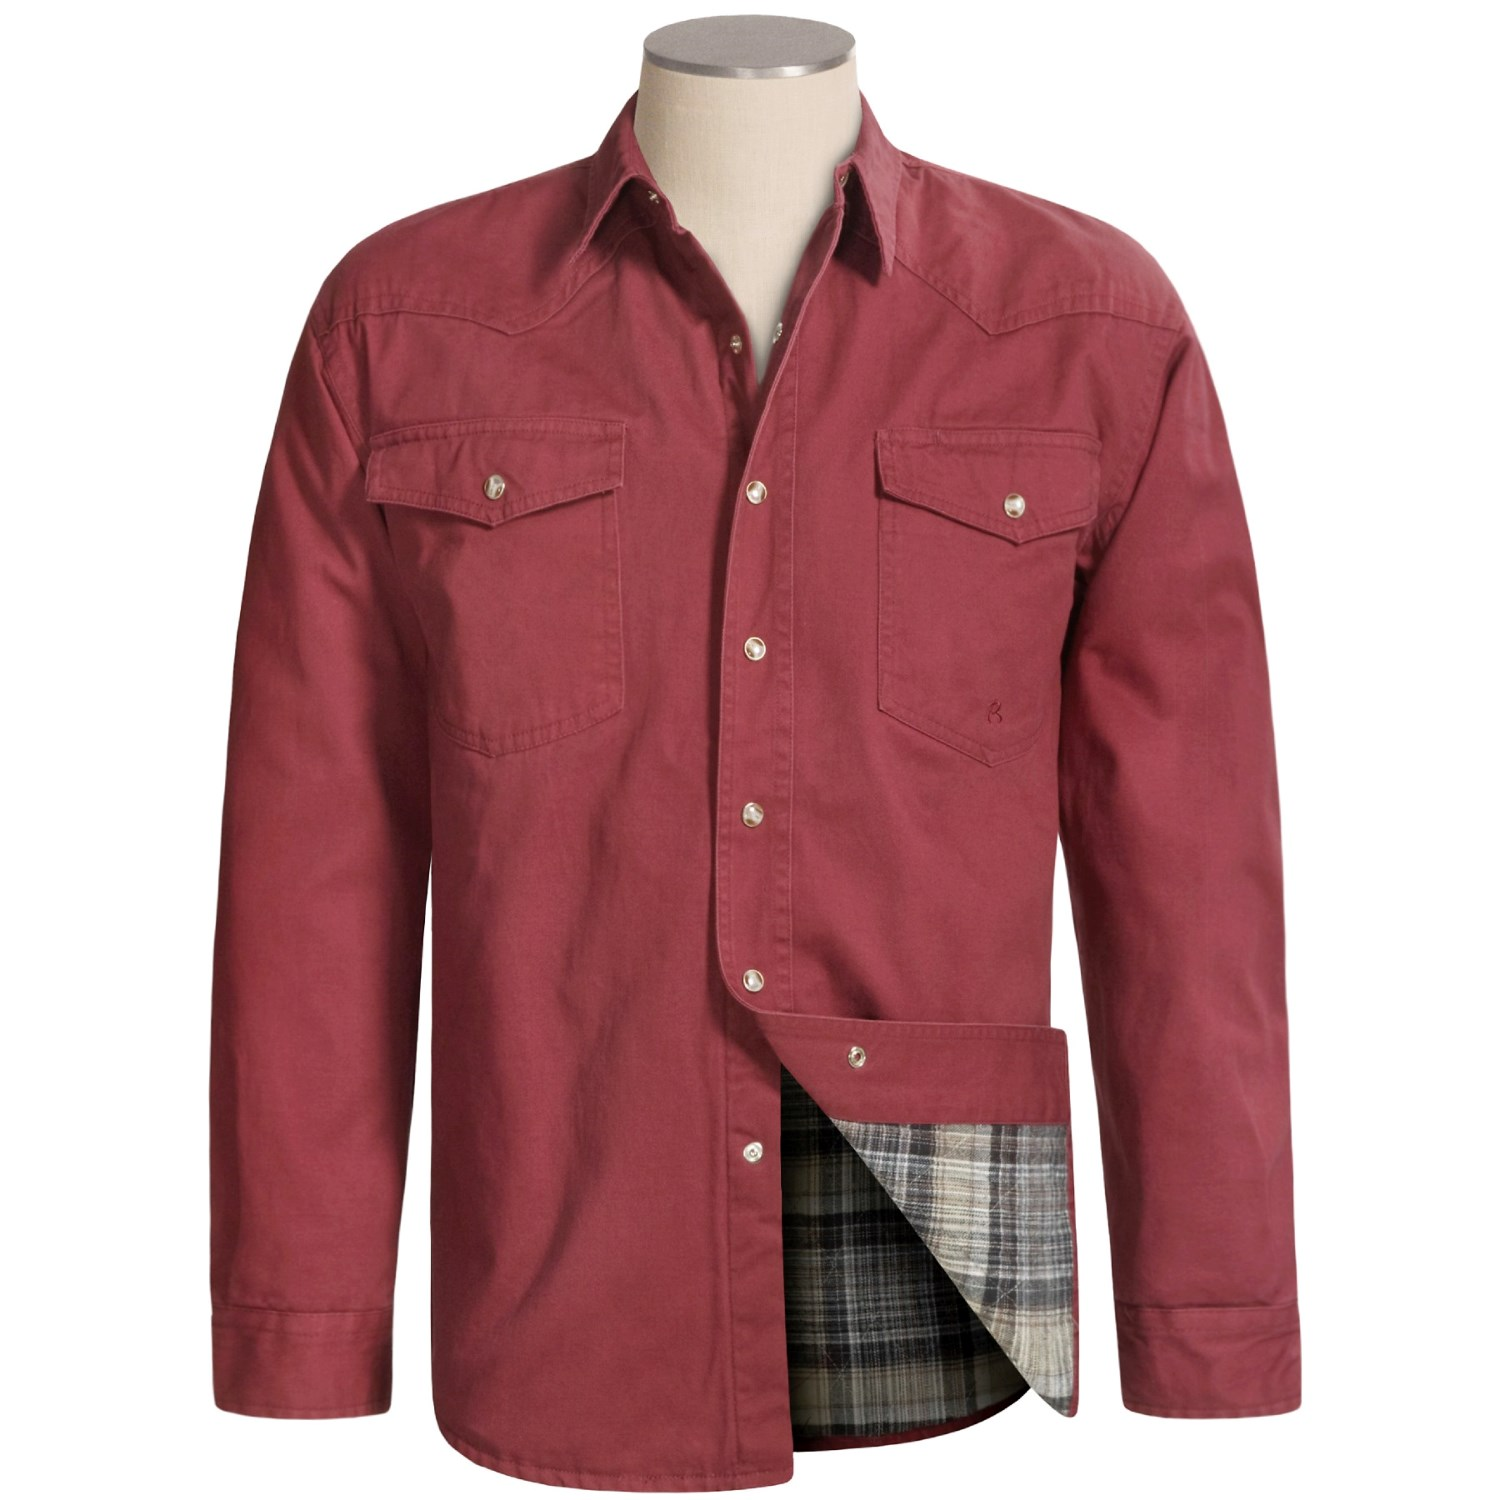 Roper flannel lined shirt jacket for tall men 2285c for Mens insulated flannel shirts